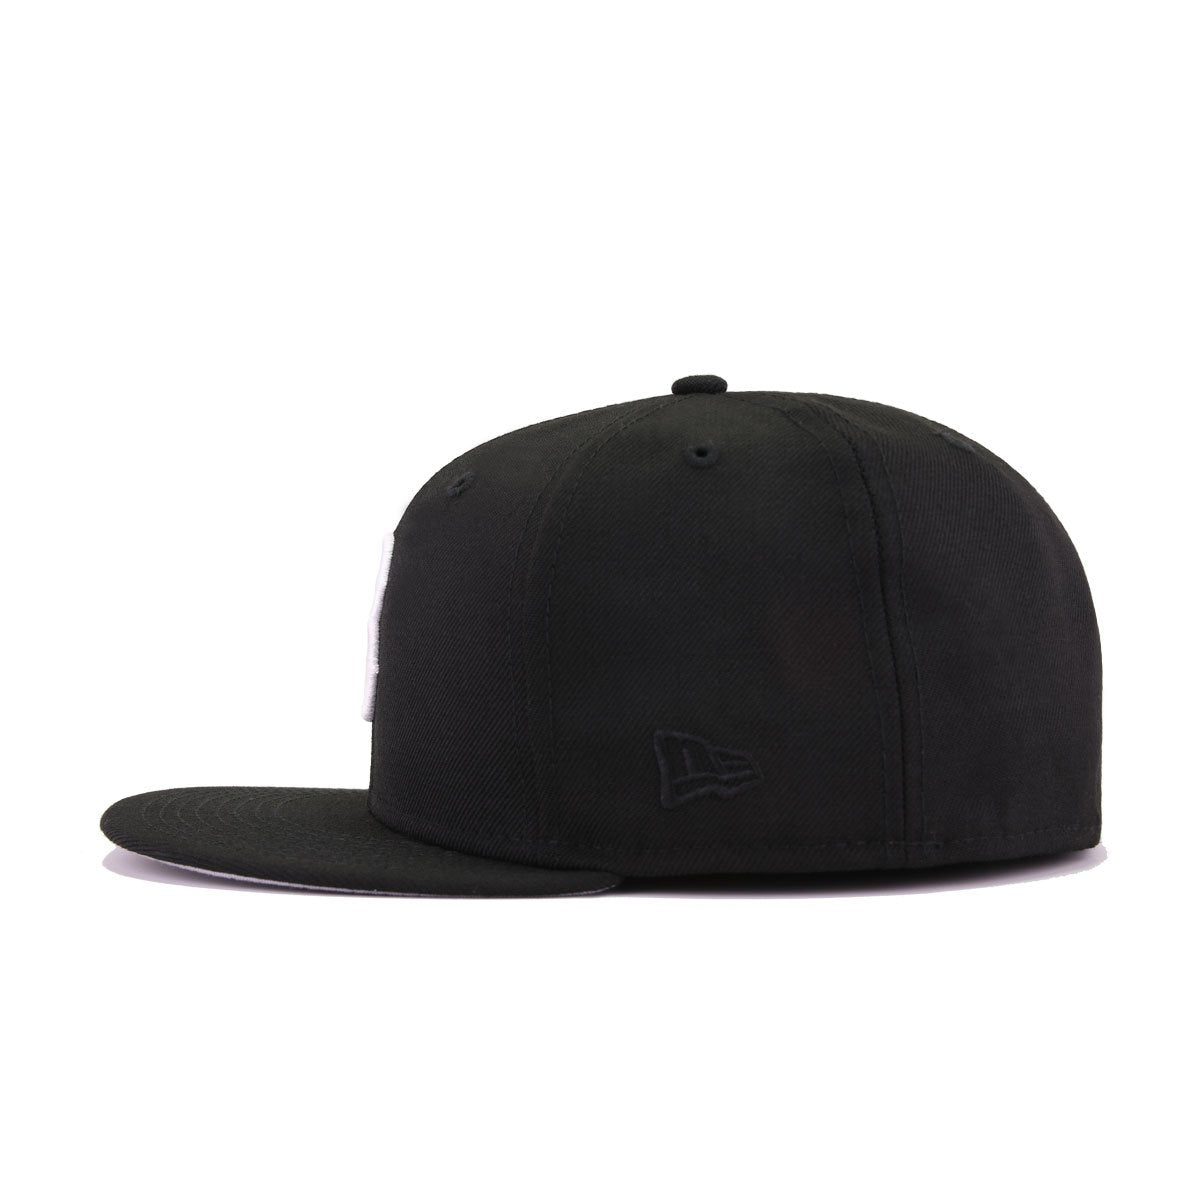 Brooklyn Dodgers Black New Era 59Fifty Fitted